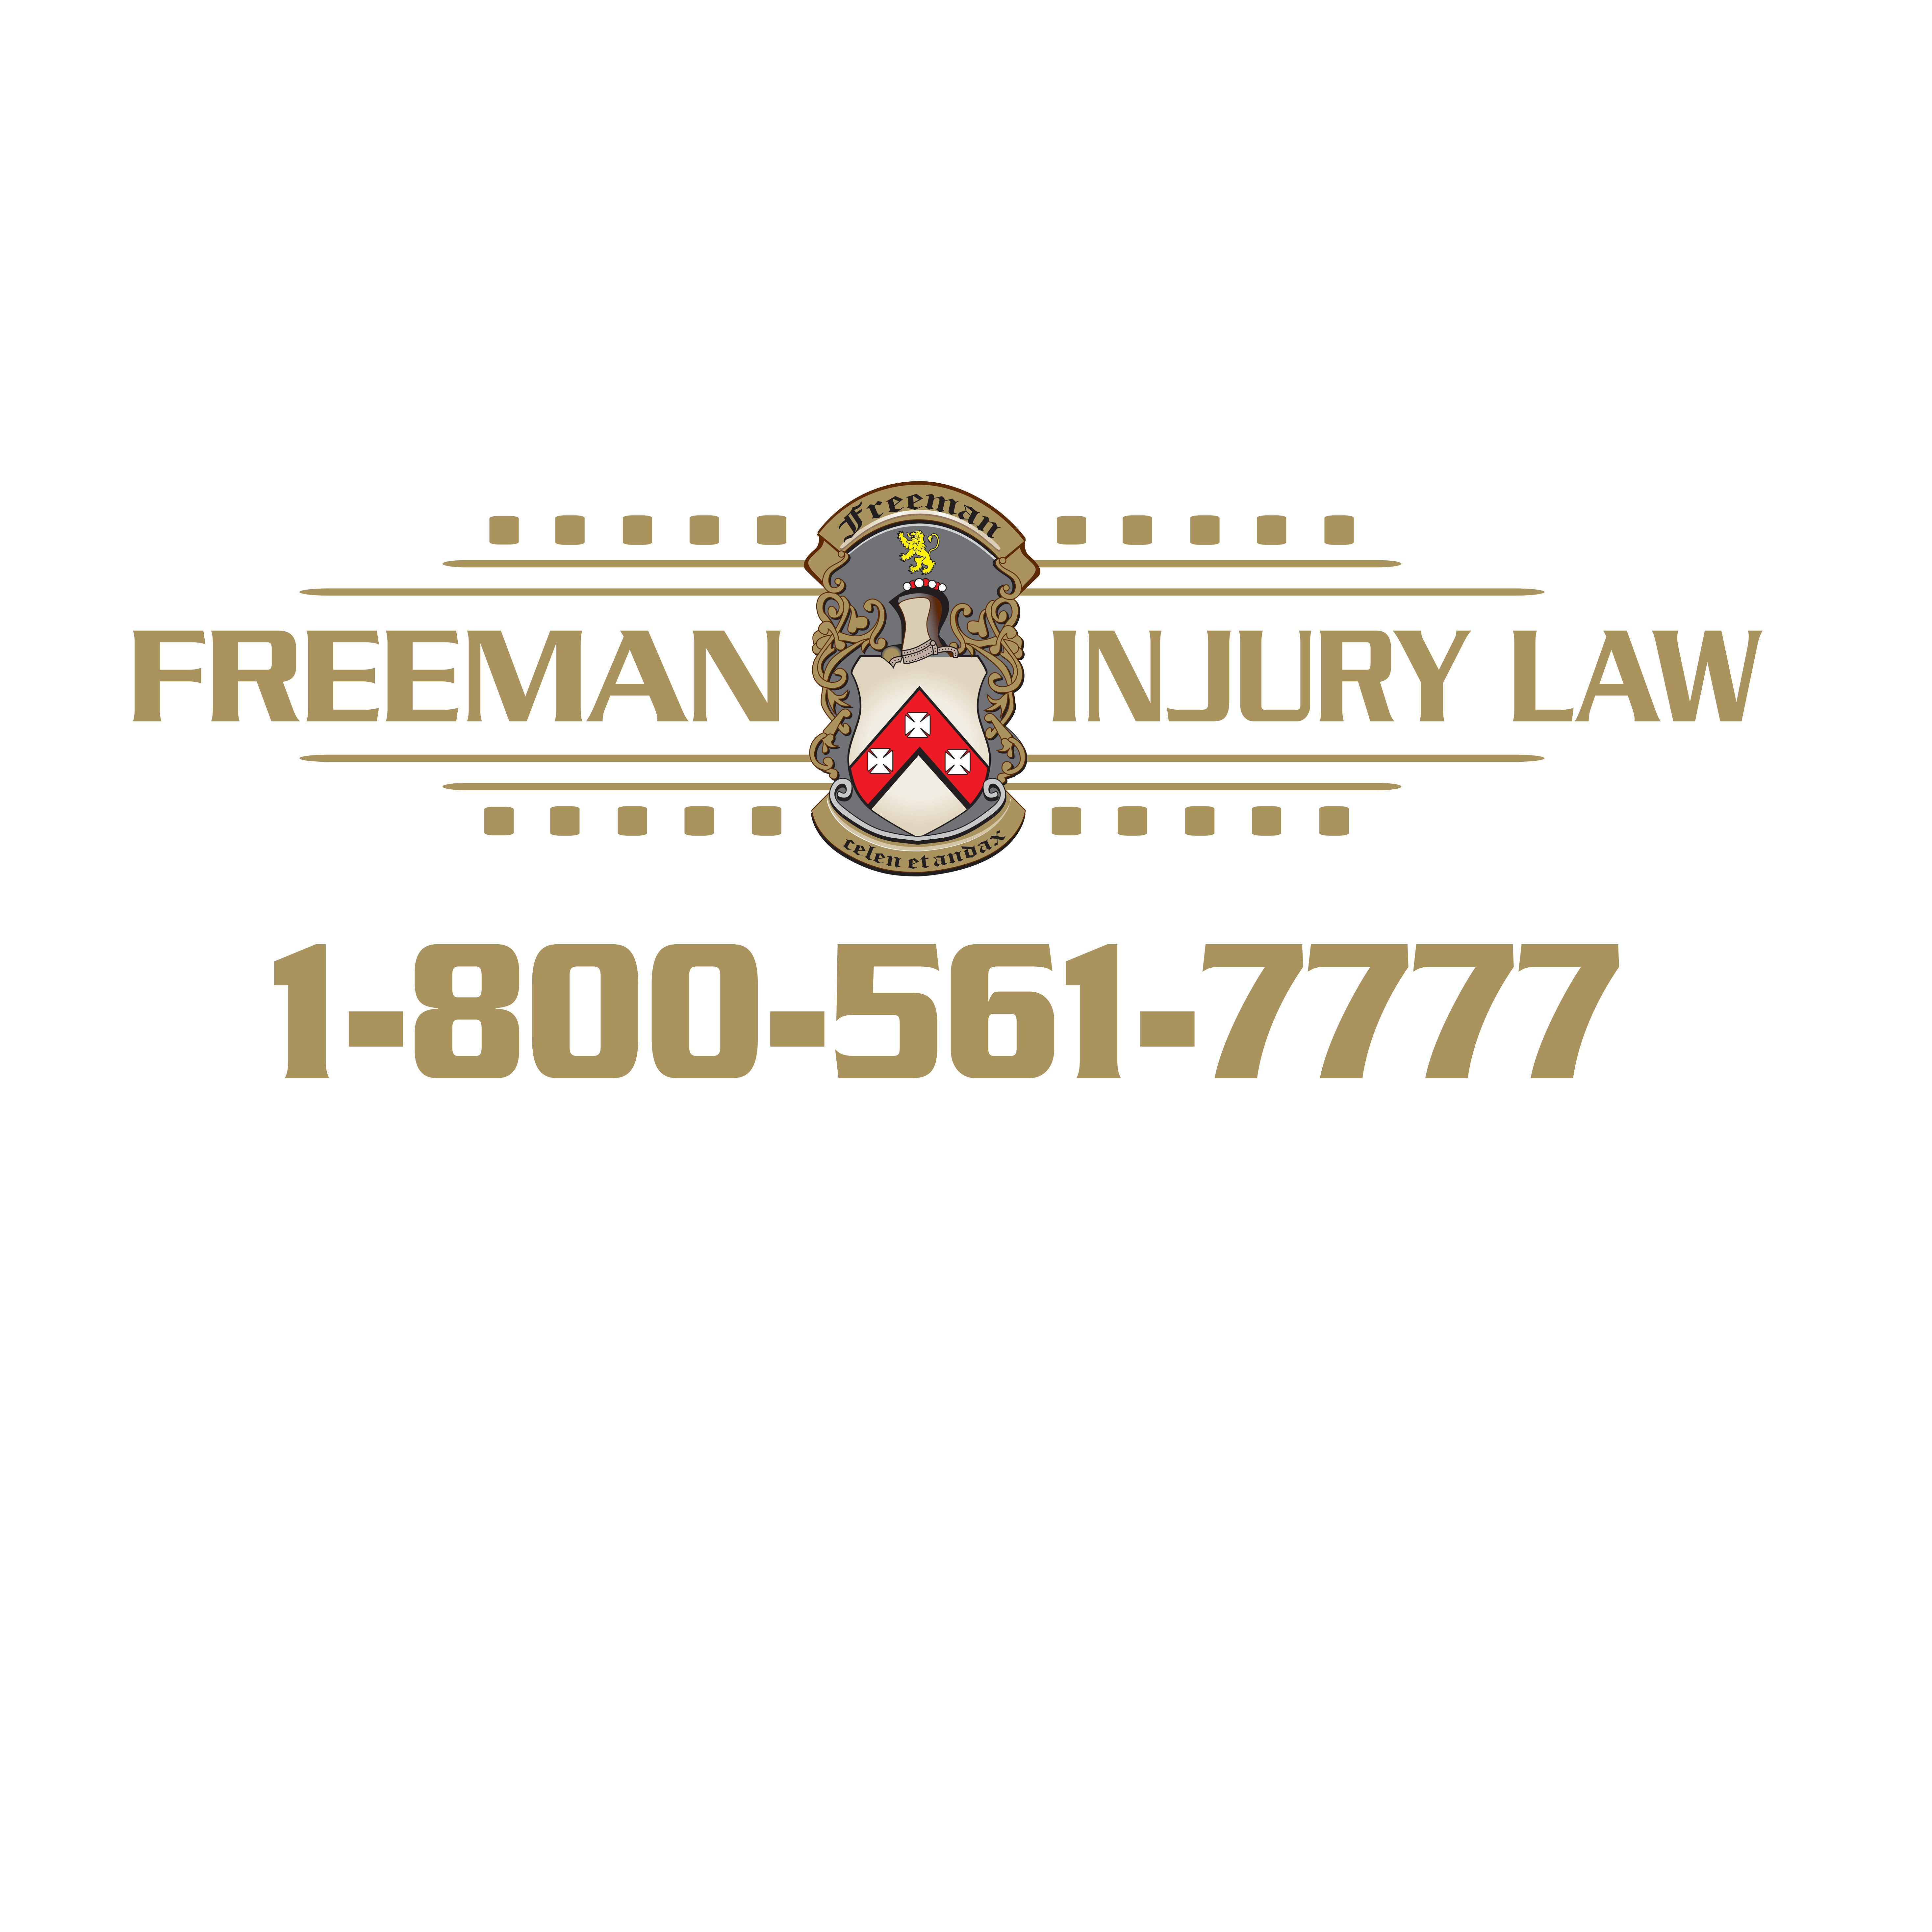 Freeman Injury Law